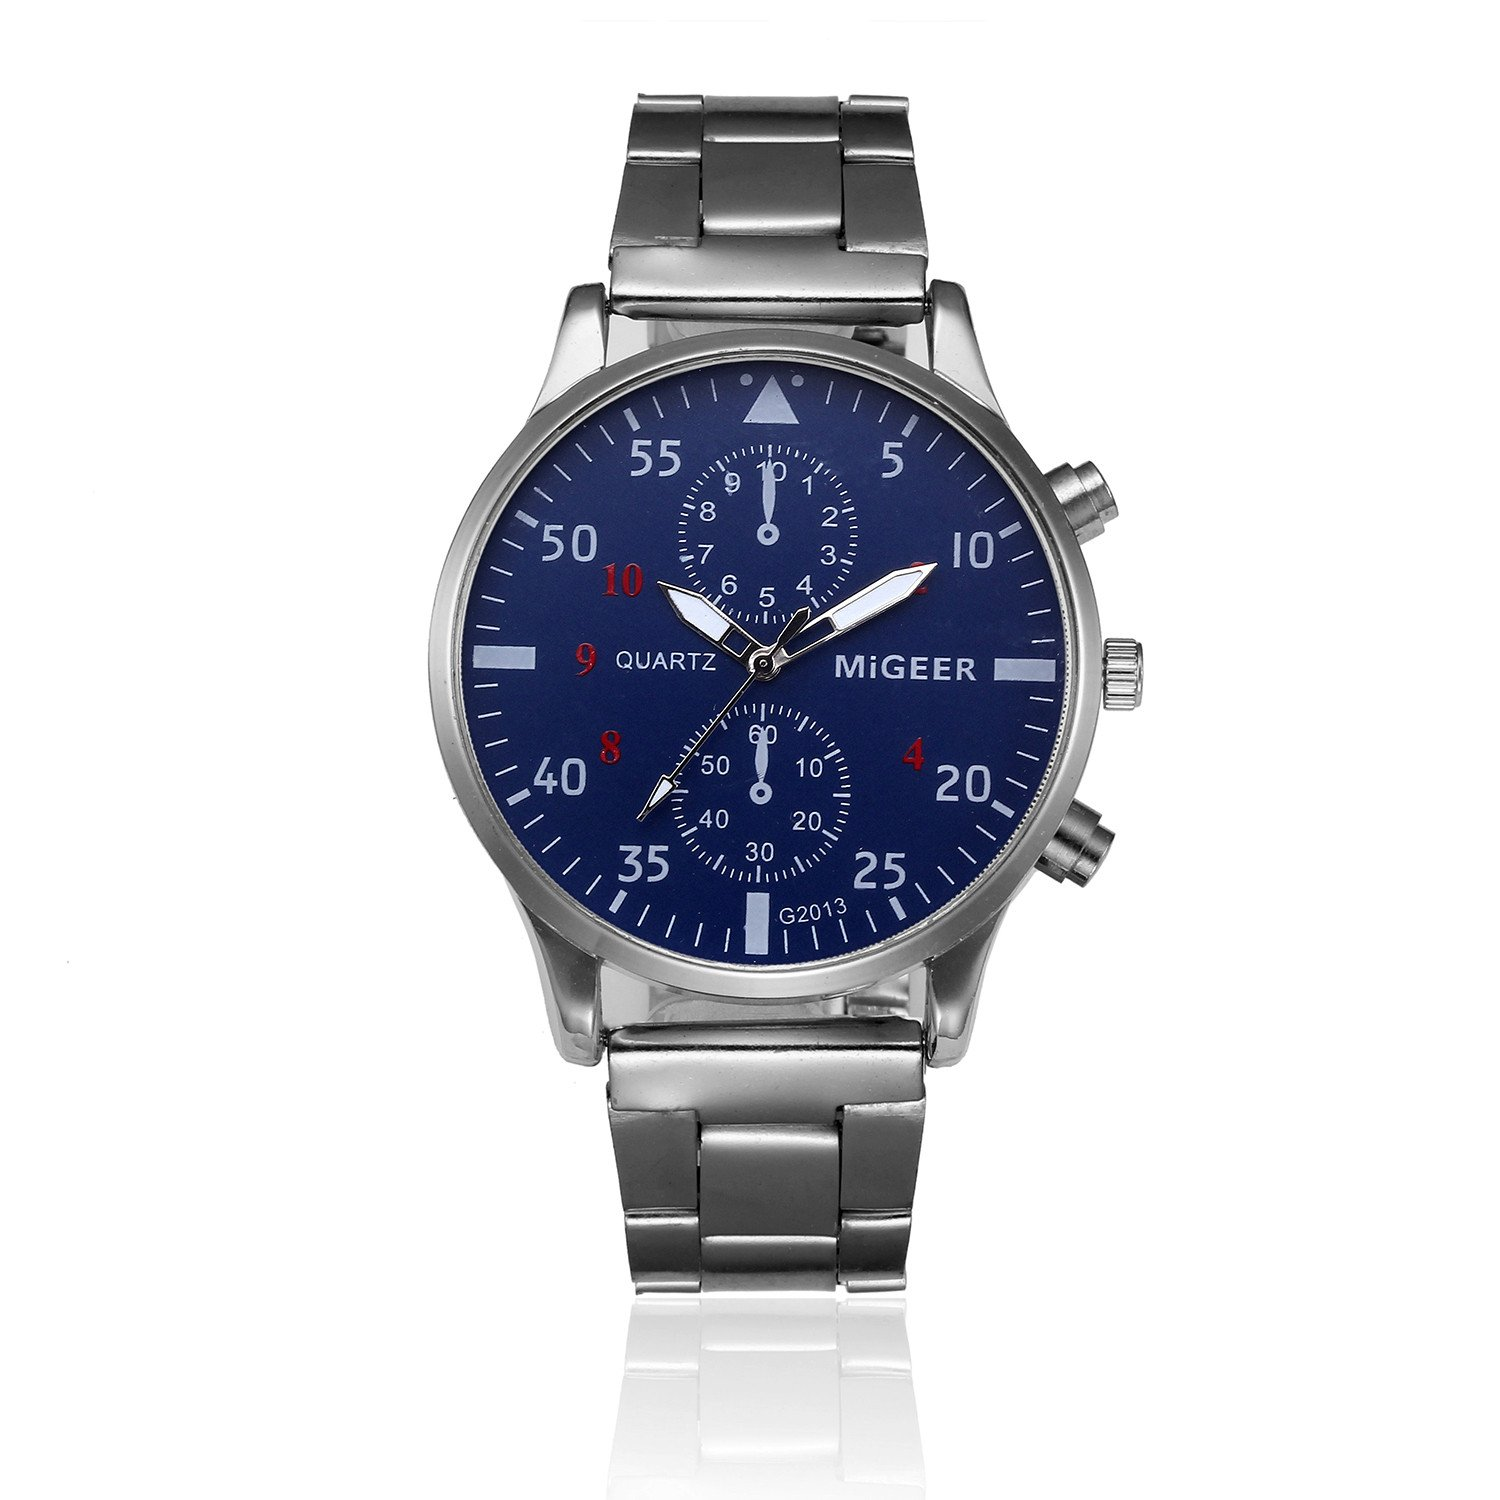 Mens Wrist Watch,POTO On Sale Crystal Stainless Steel Fashion Clearance Analog Quartz Gift Watches (Silver+Blue)